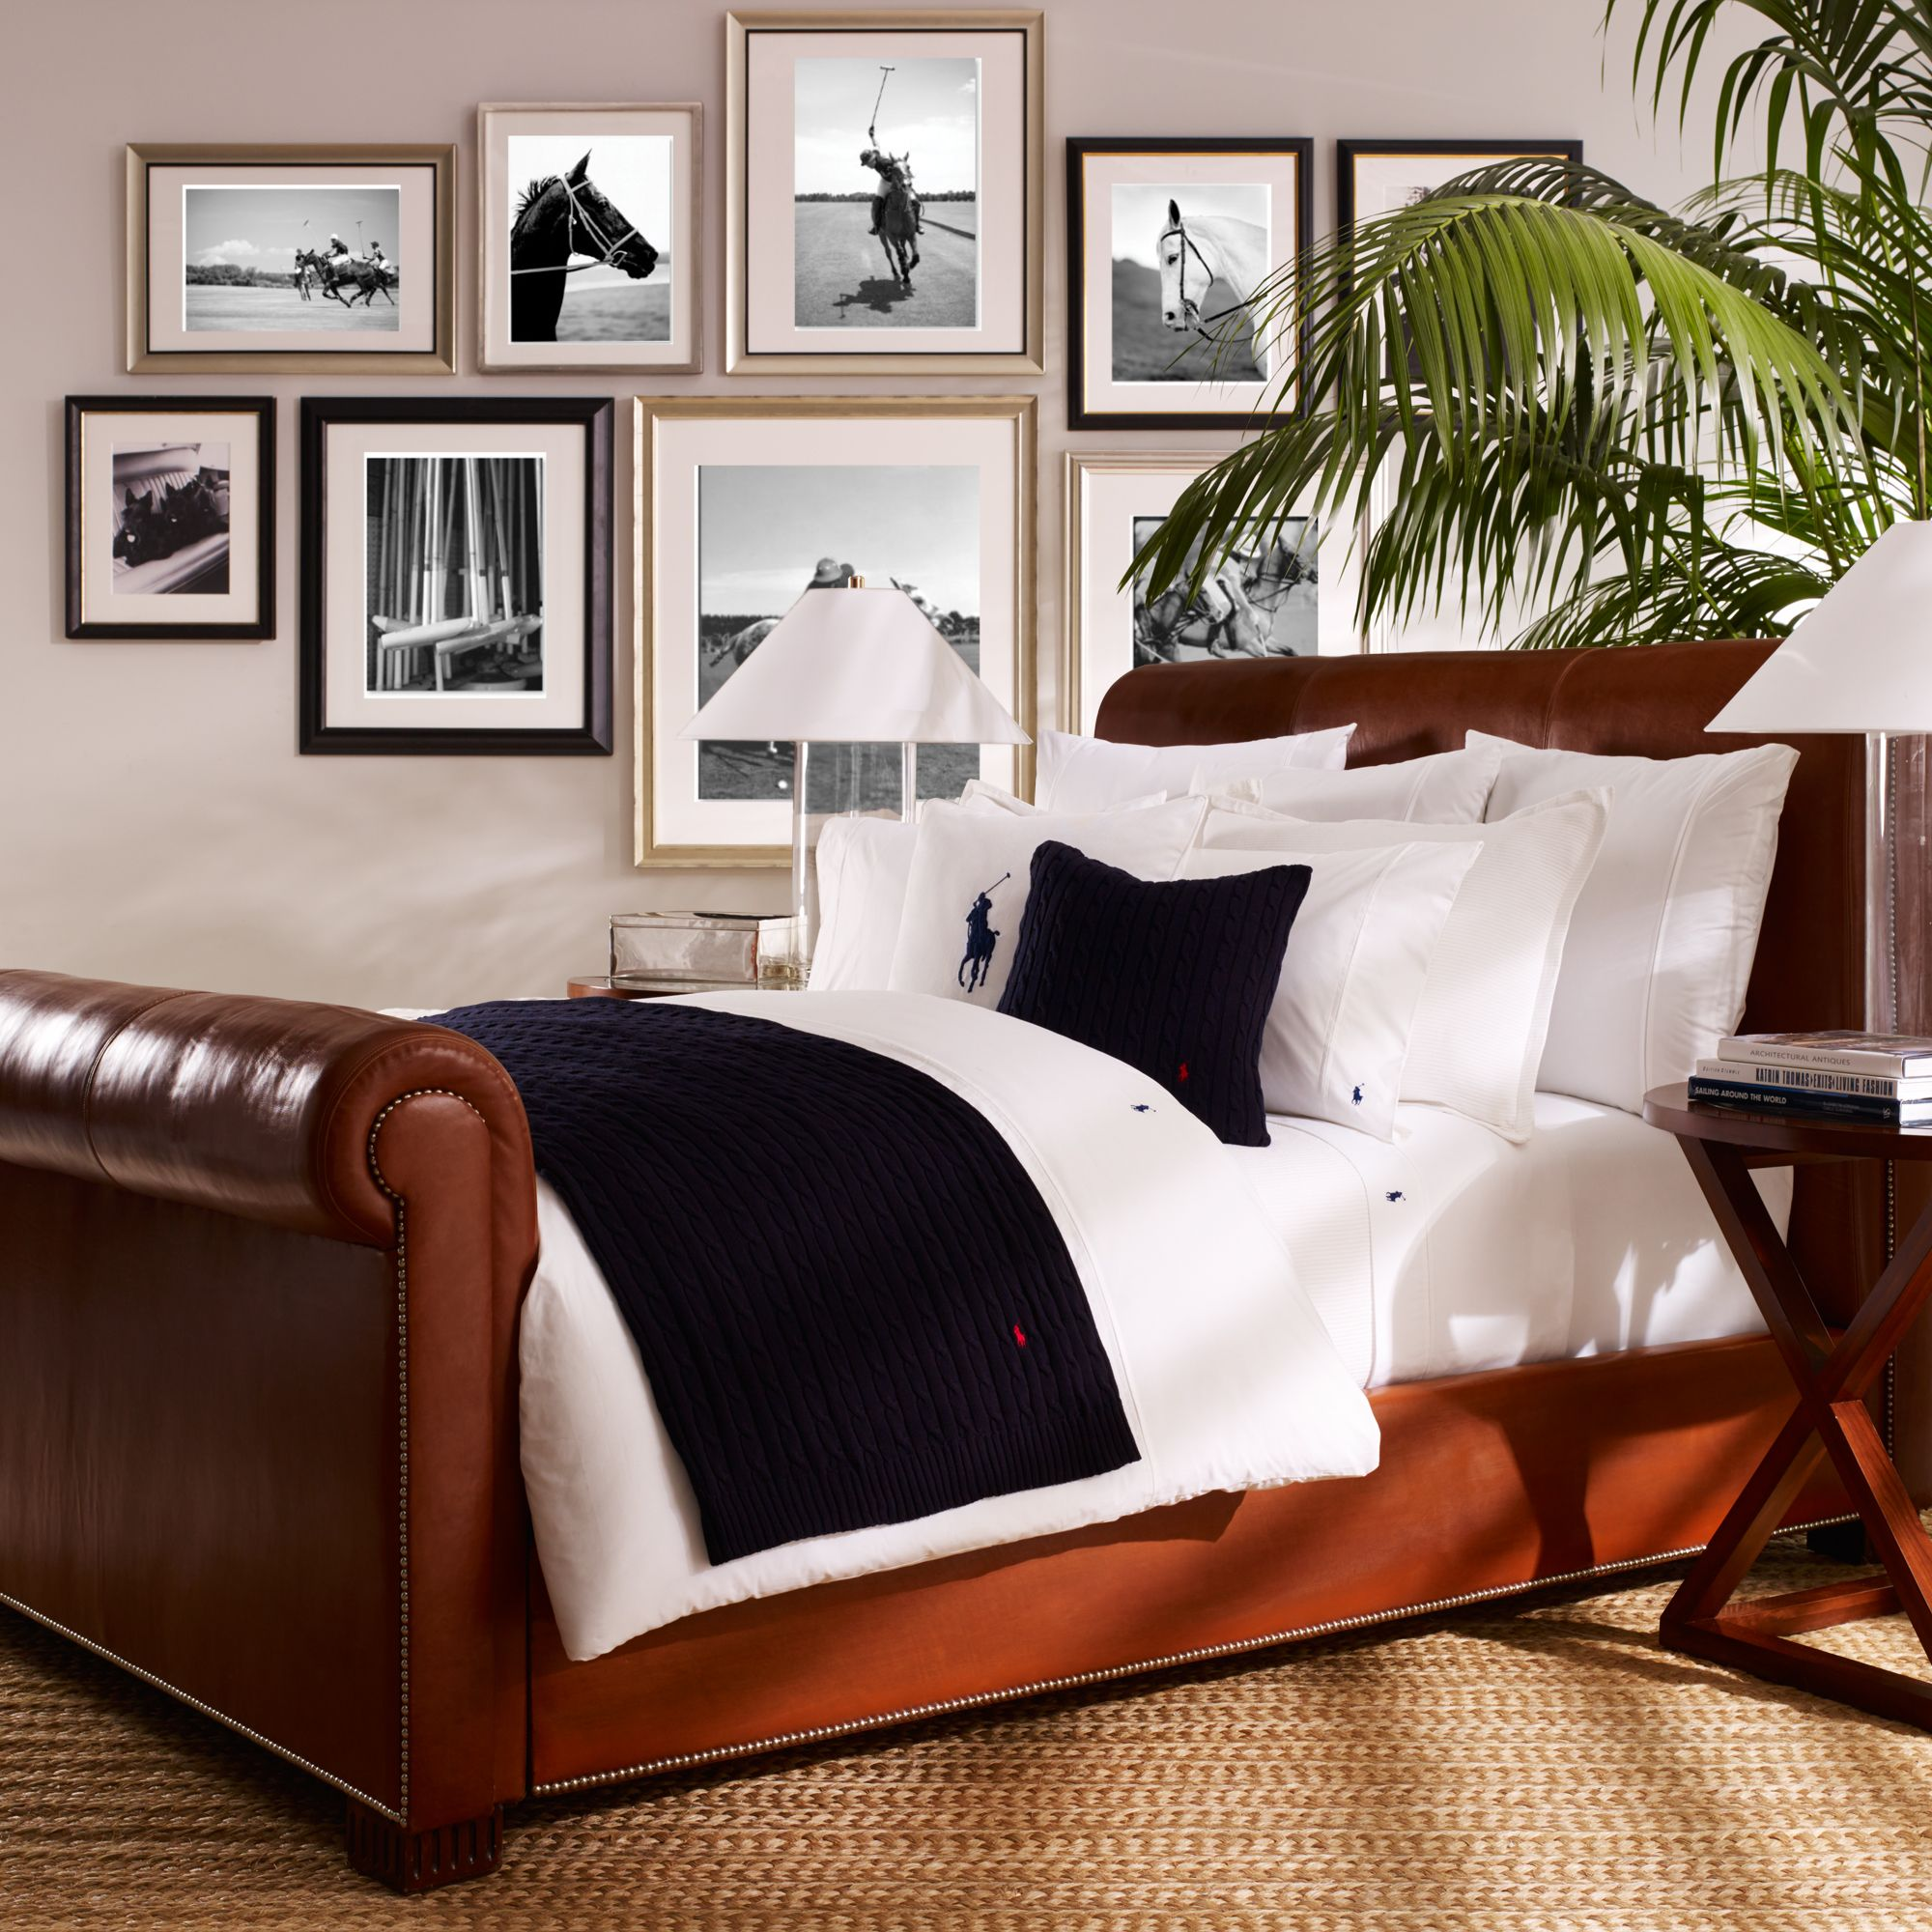 Ralph Lauren Home Player Bed Linen Range ...